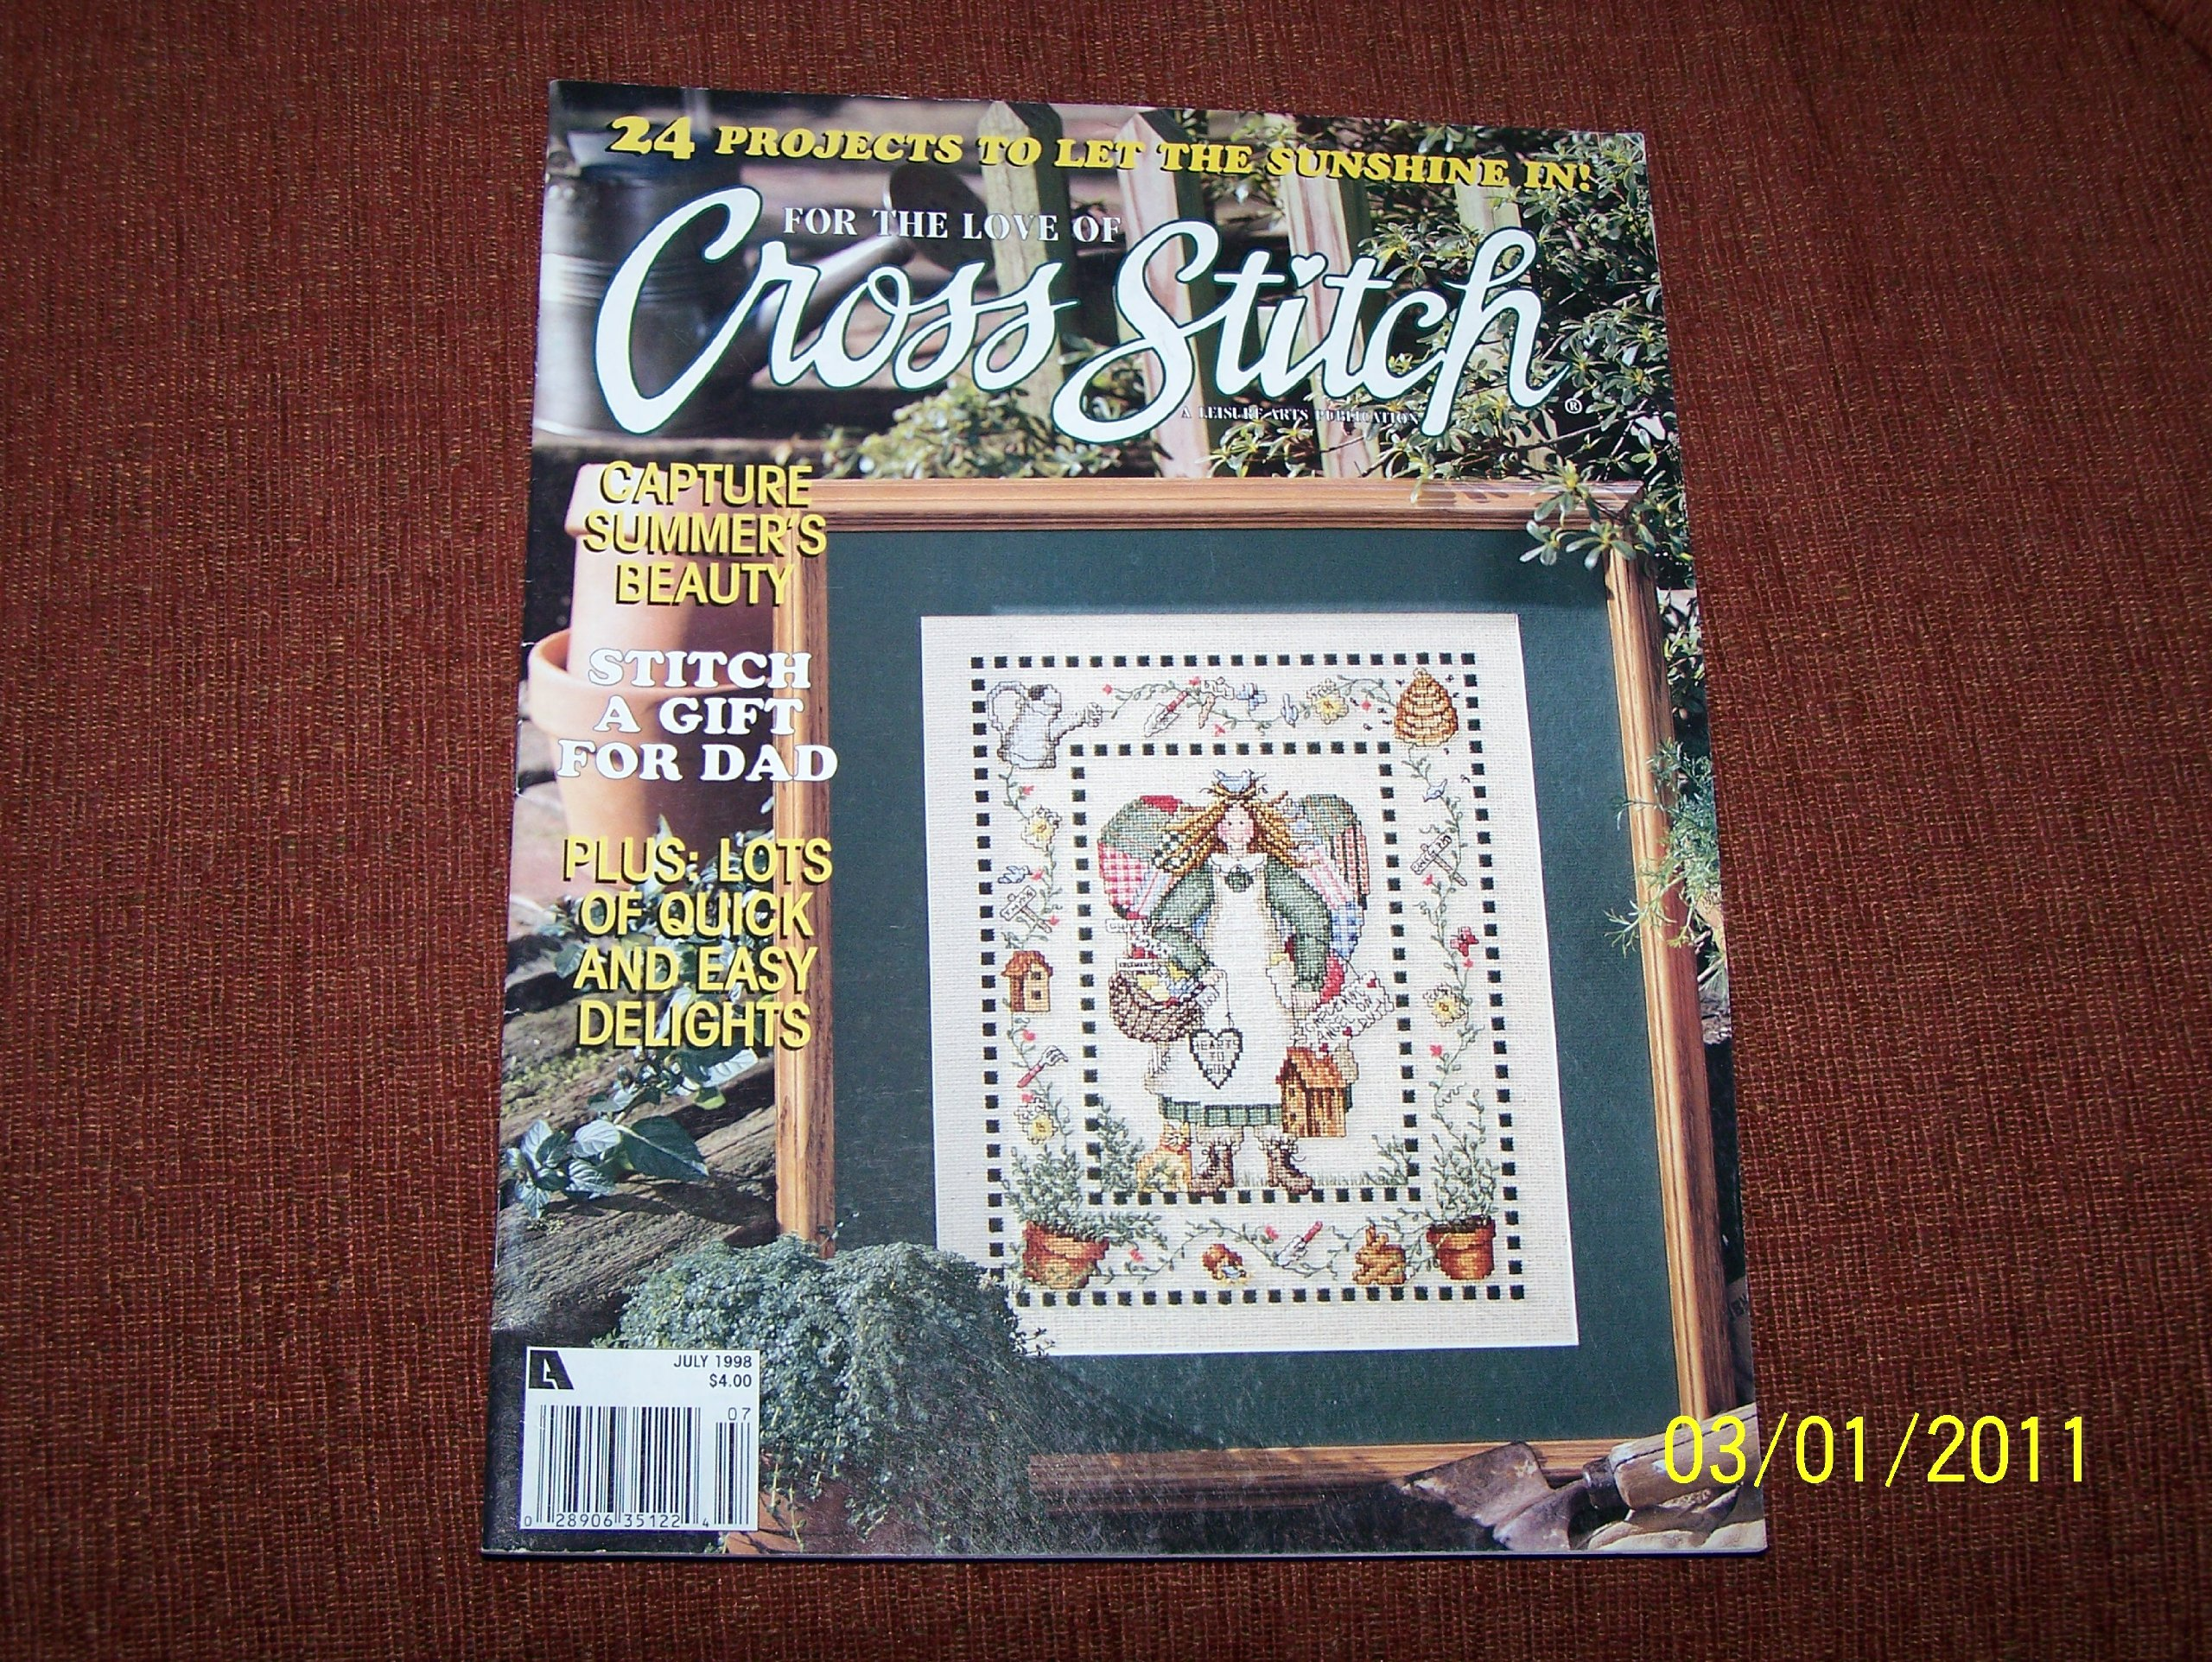 For the Love of Cross Stitch Magazine(Volume 11, No. 1) JULY 1998